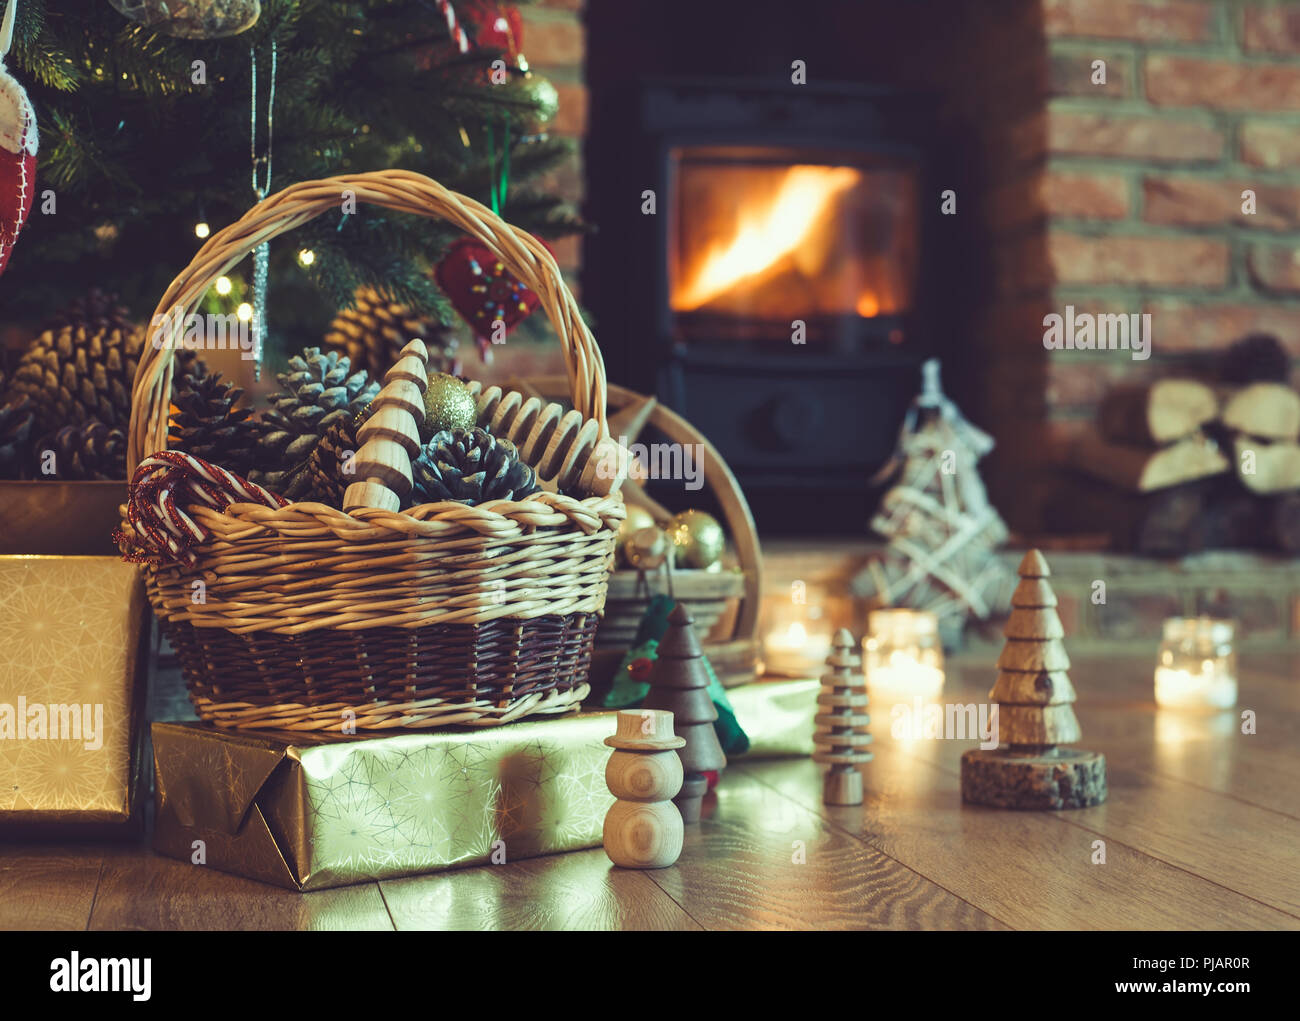 Christmas Decorations In The Basket In Front Of Fireplace With